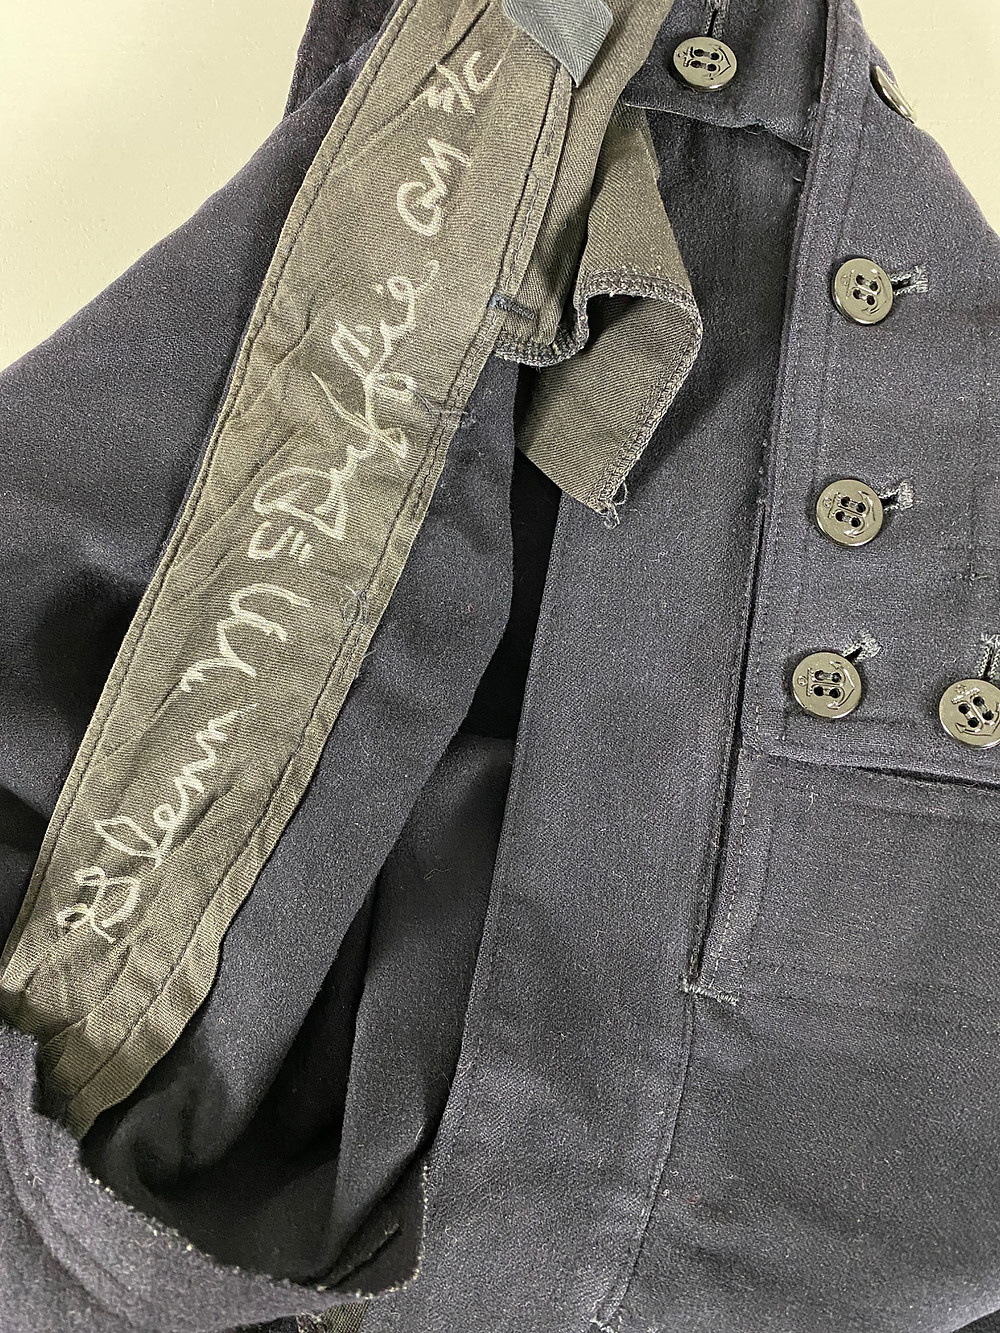 McDuffie also signed the waistband of the pants of his sailor uniform.